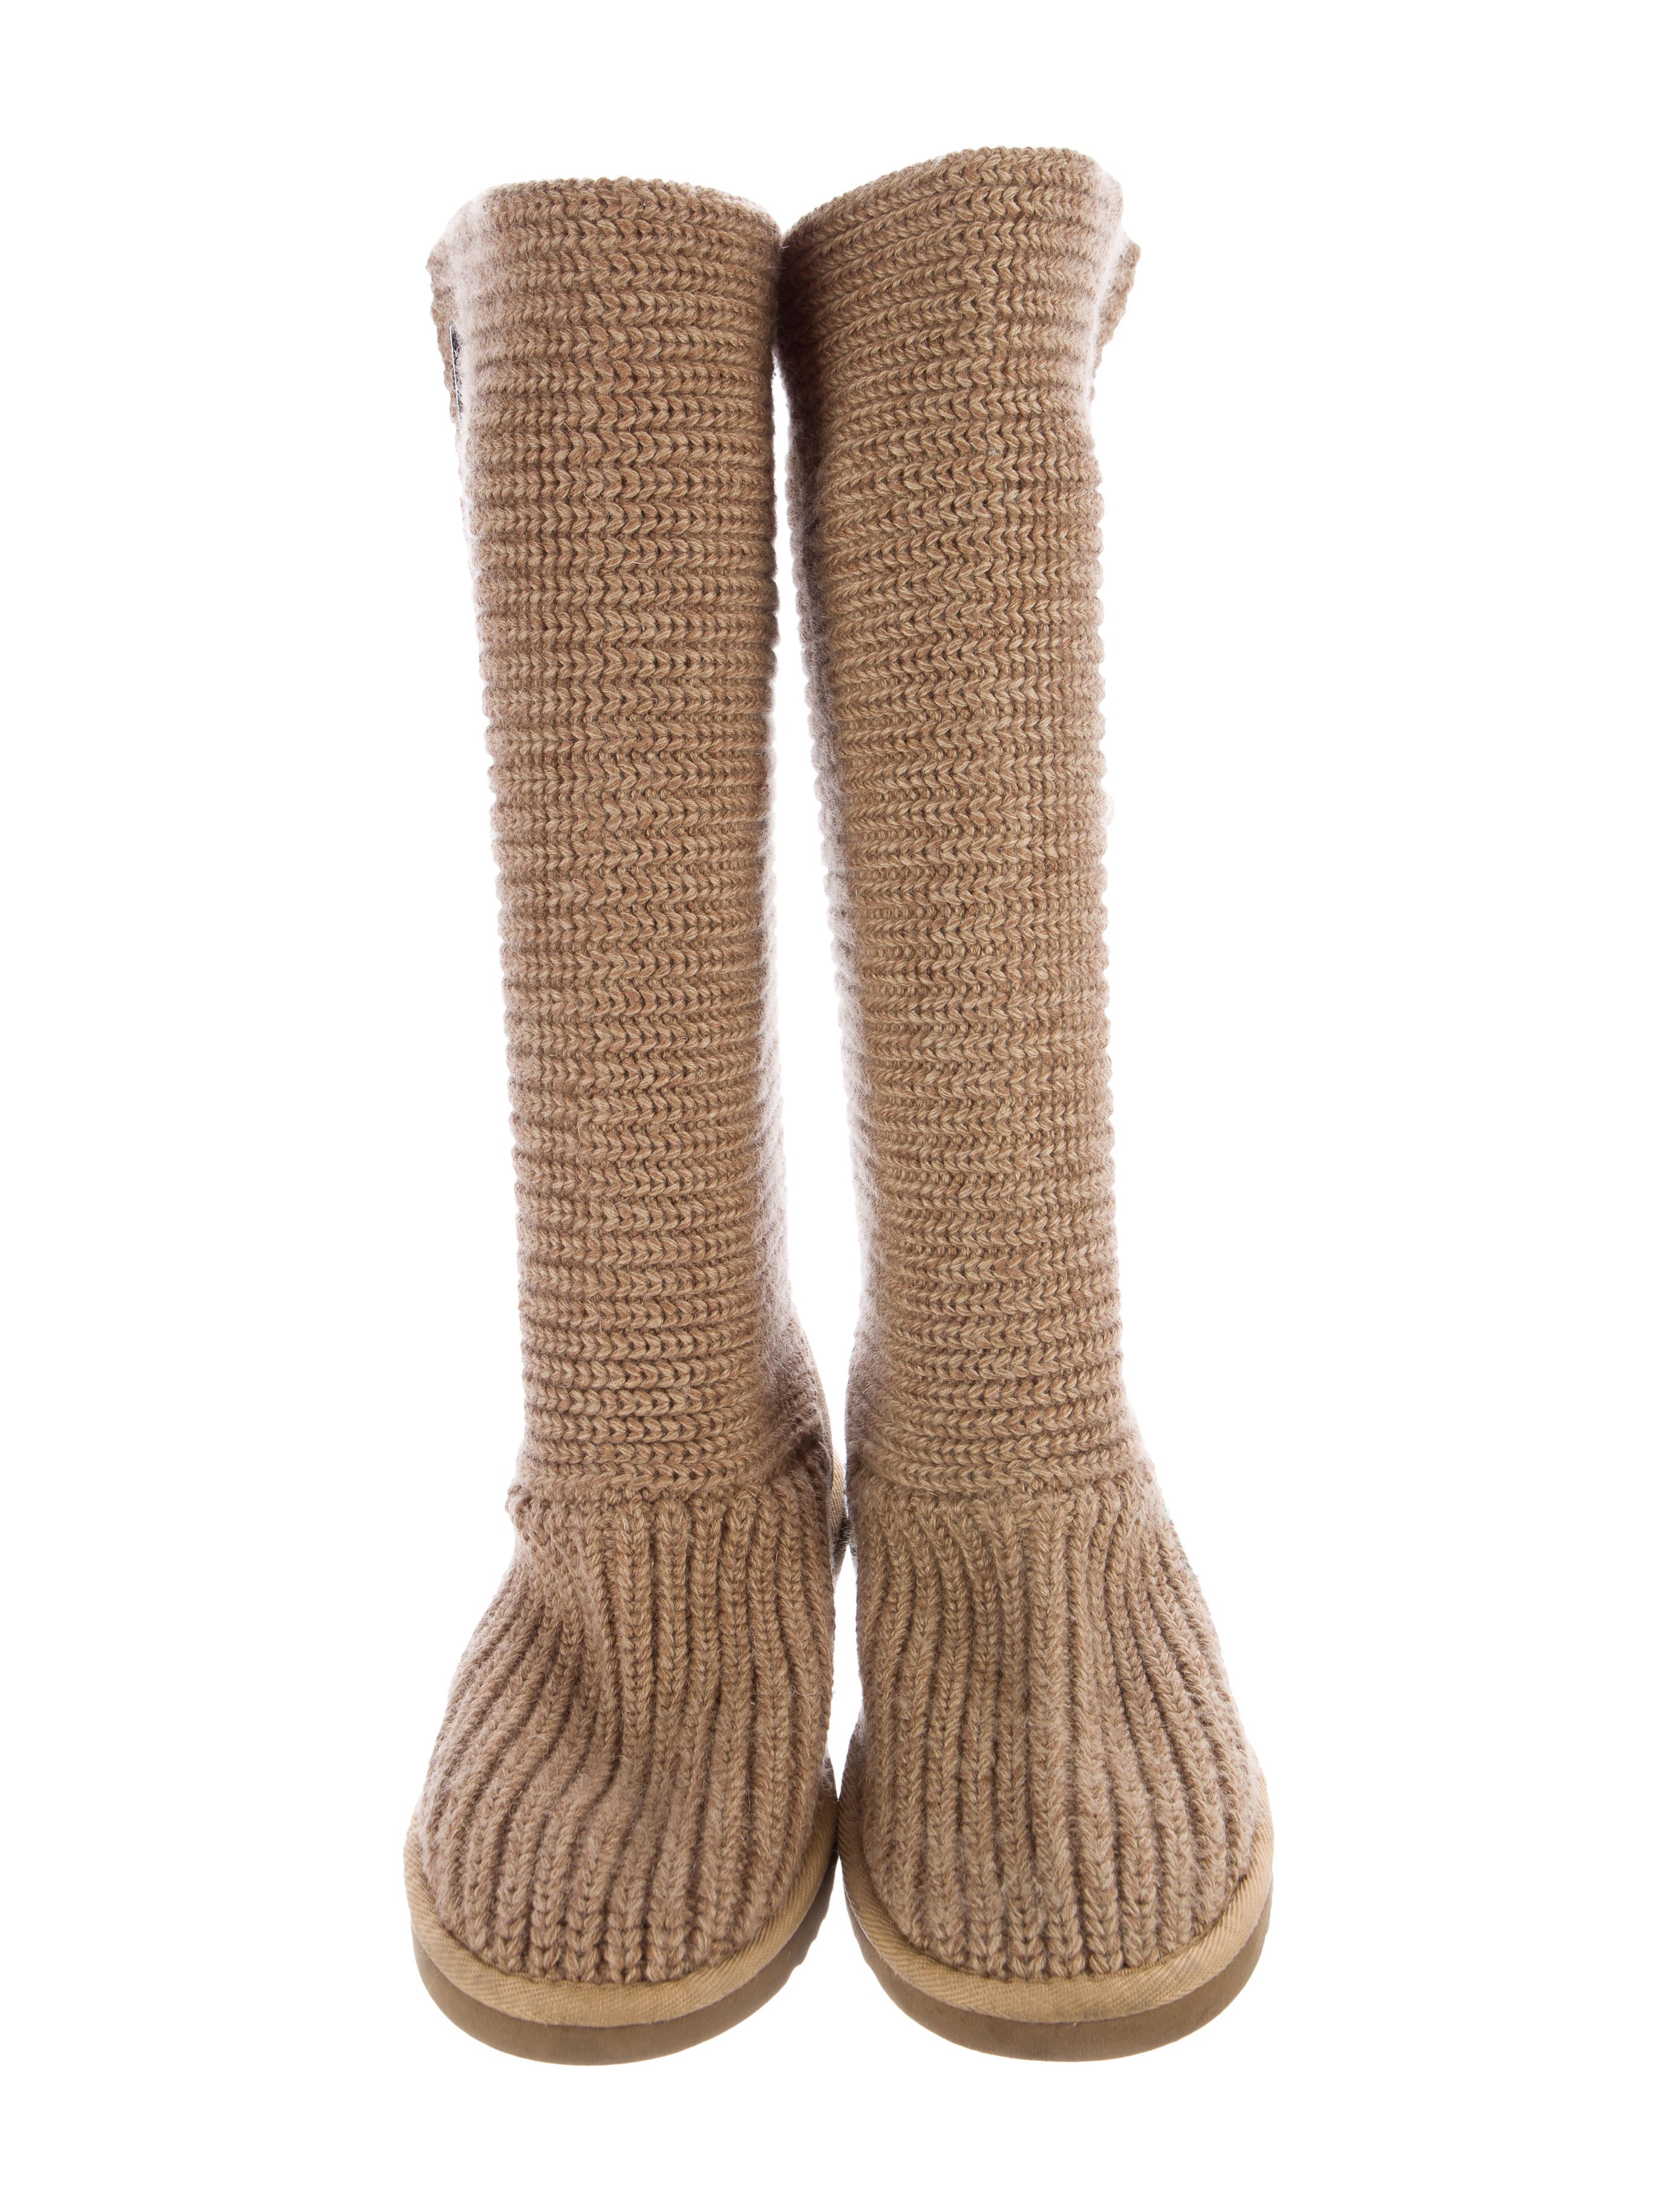 adcd1a0d224 Ugg Style Cardy Boots - cheap watches mgc-gas.com